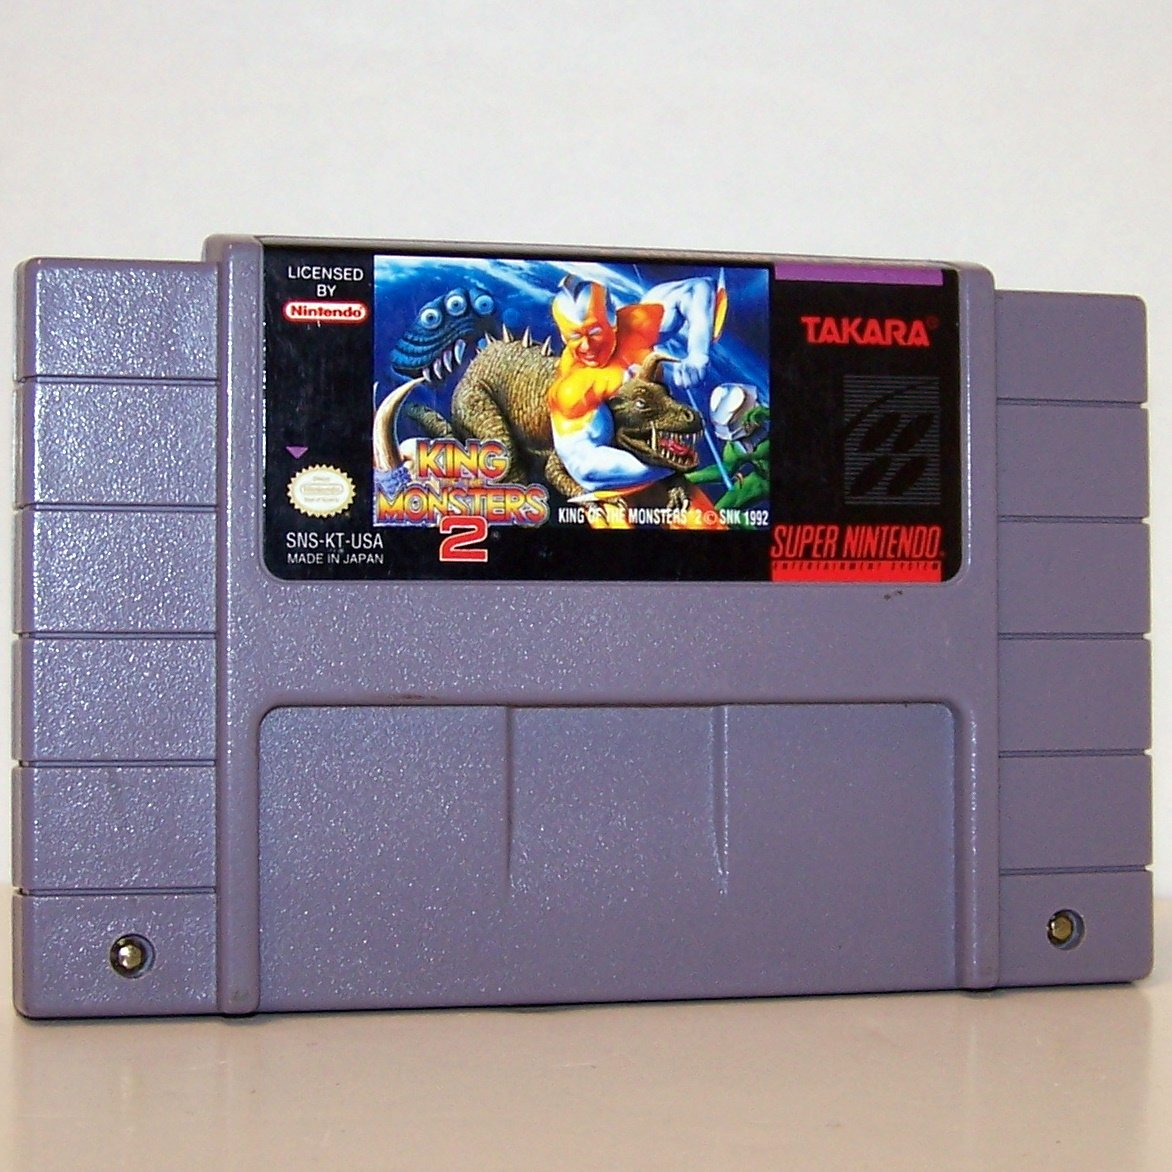 King of the Monsters 2 Super Nintendo Game Cartridge